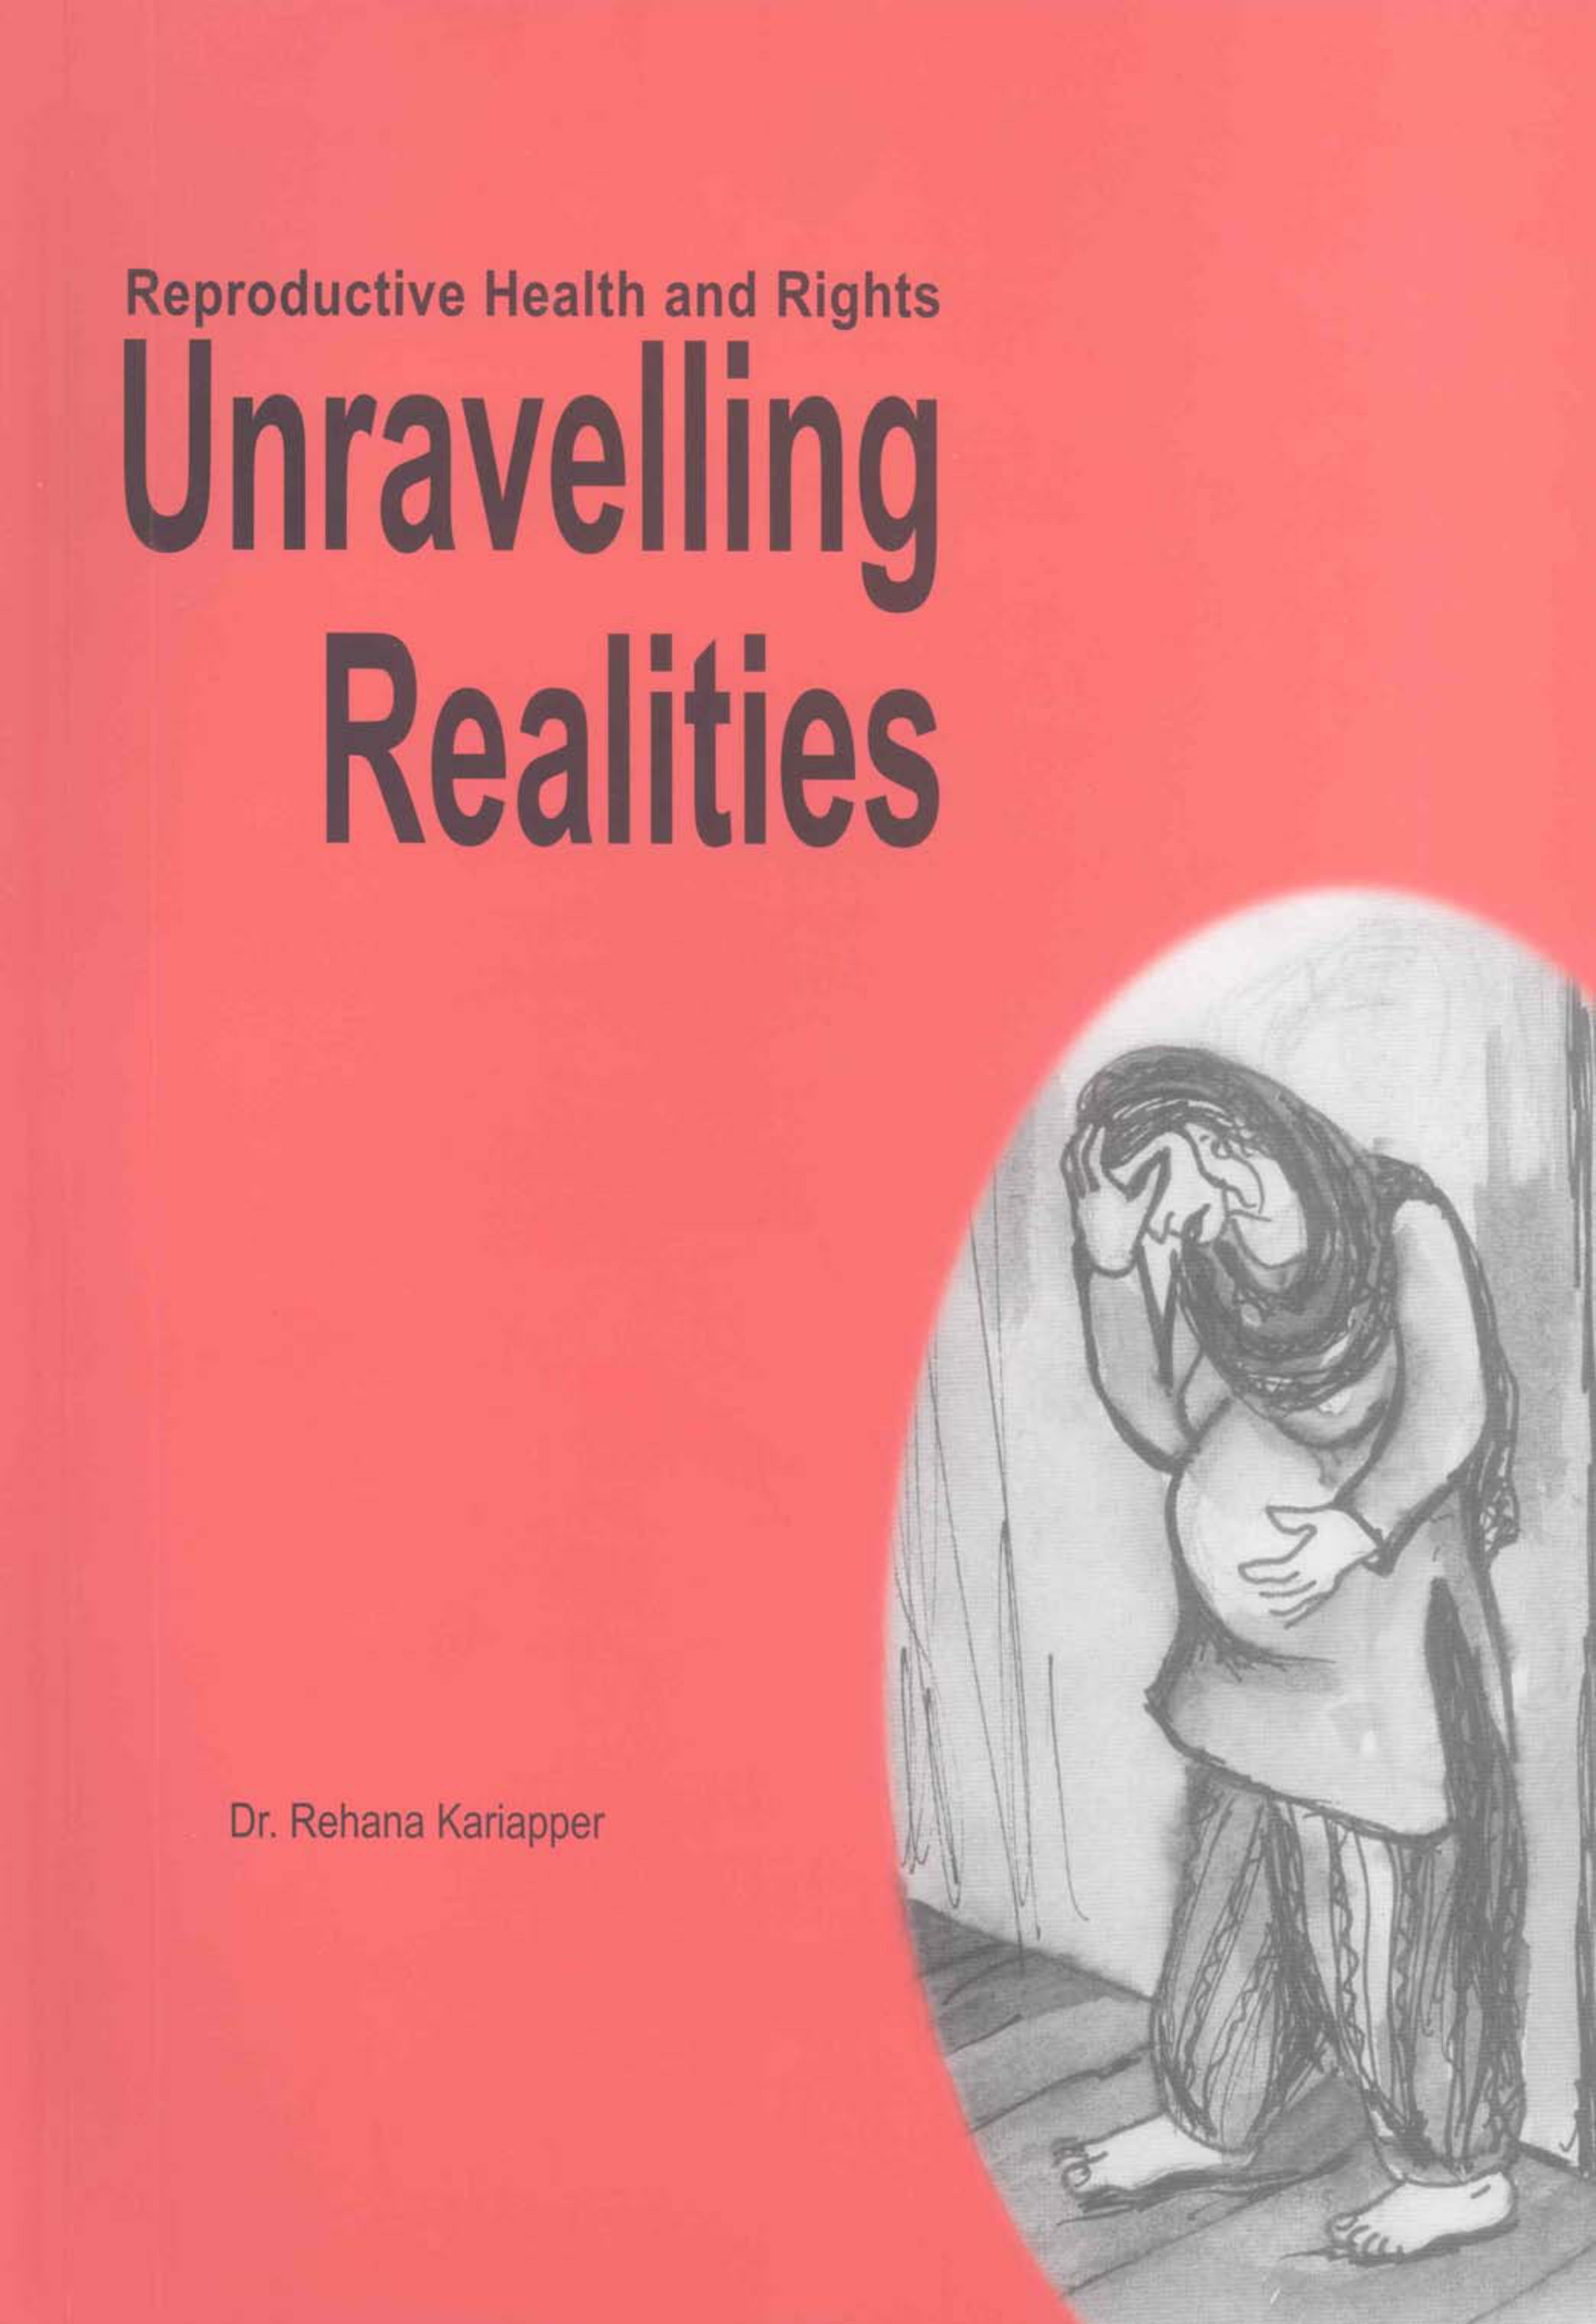 Unravelling Realities